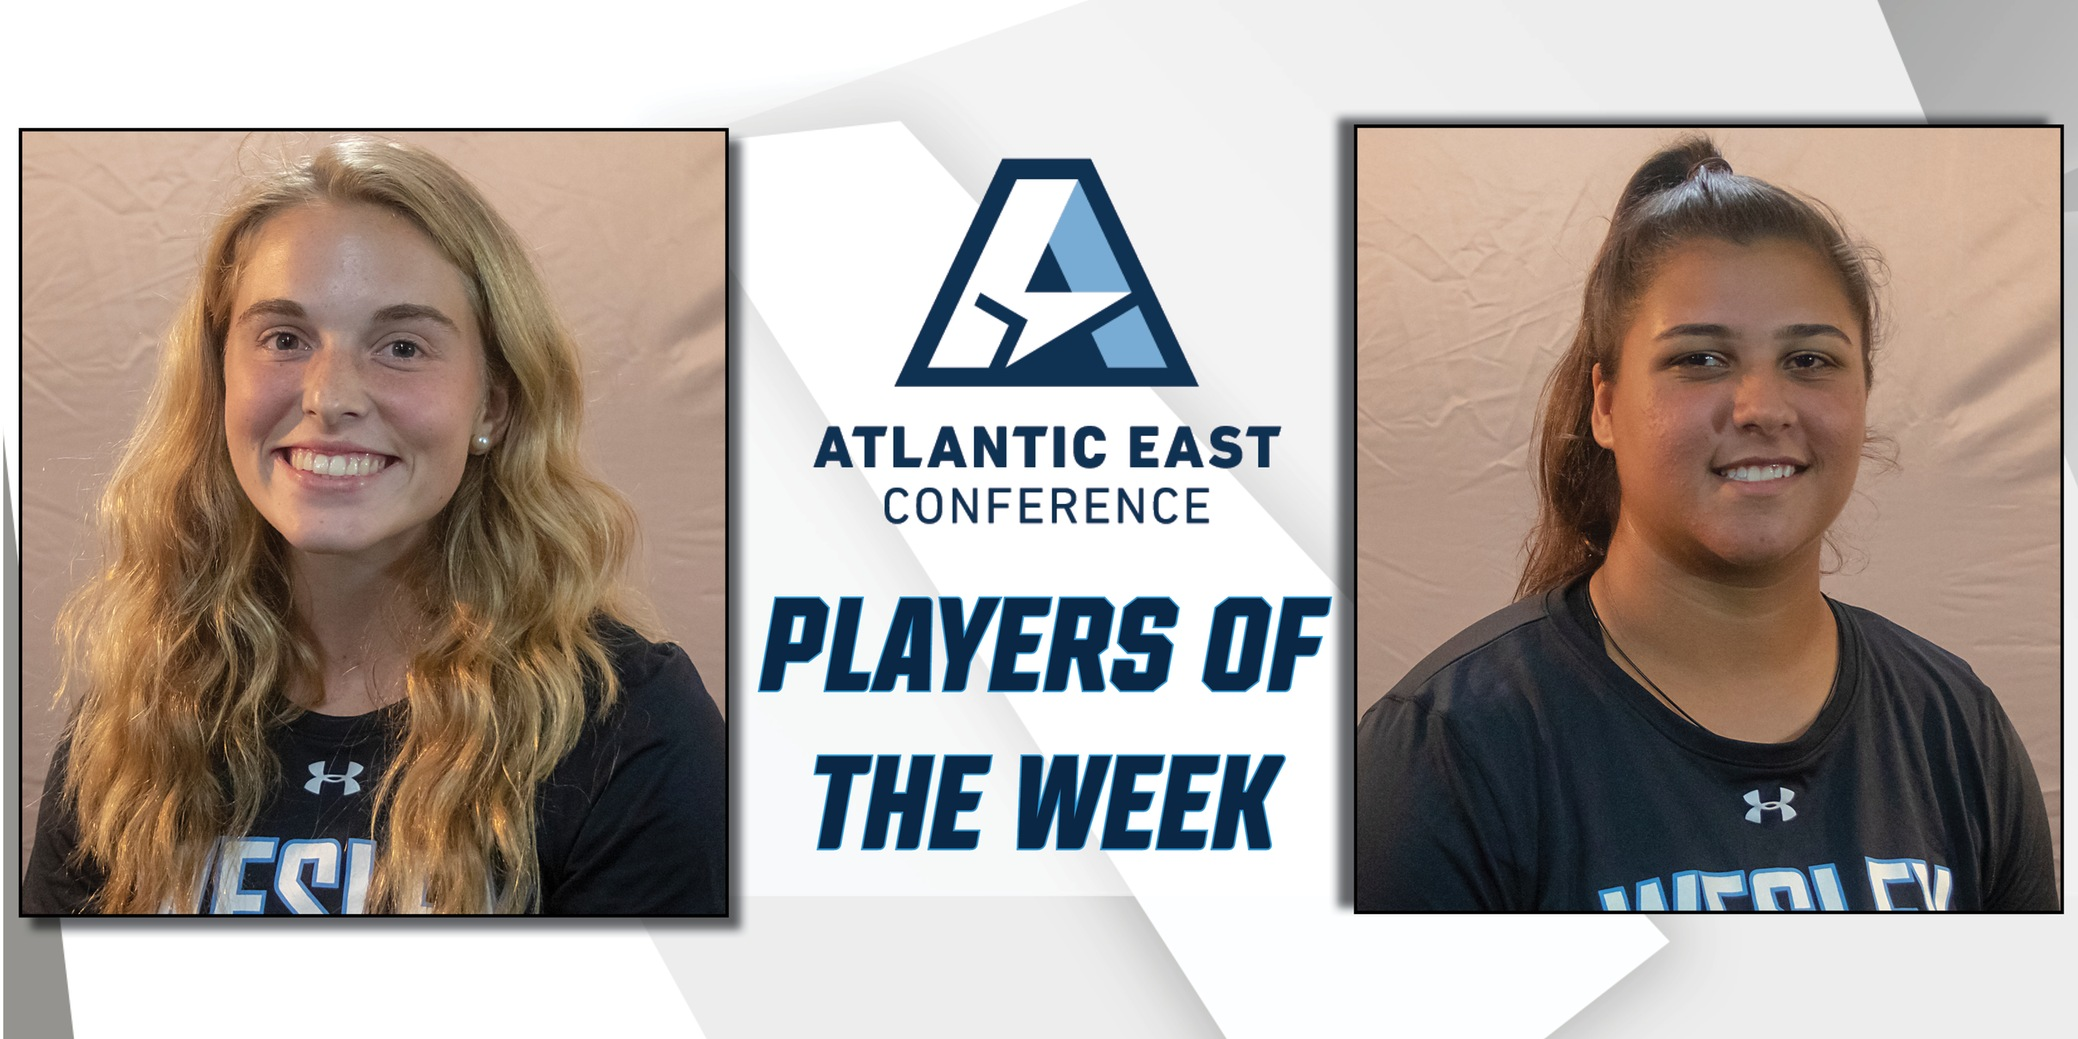 Caldarelli, Fabris earn AEC Player of the Week laurels